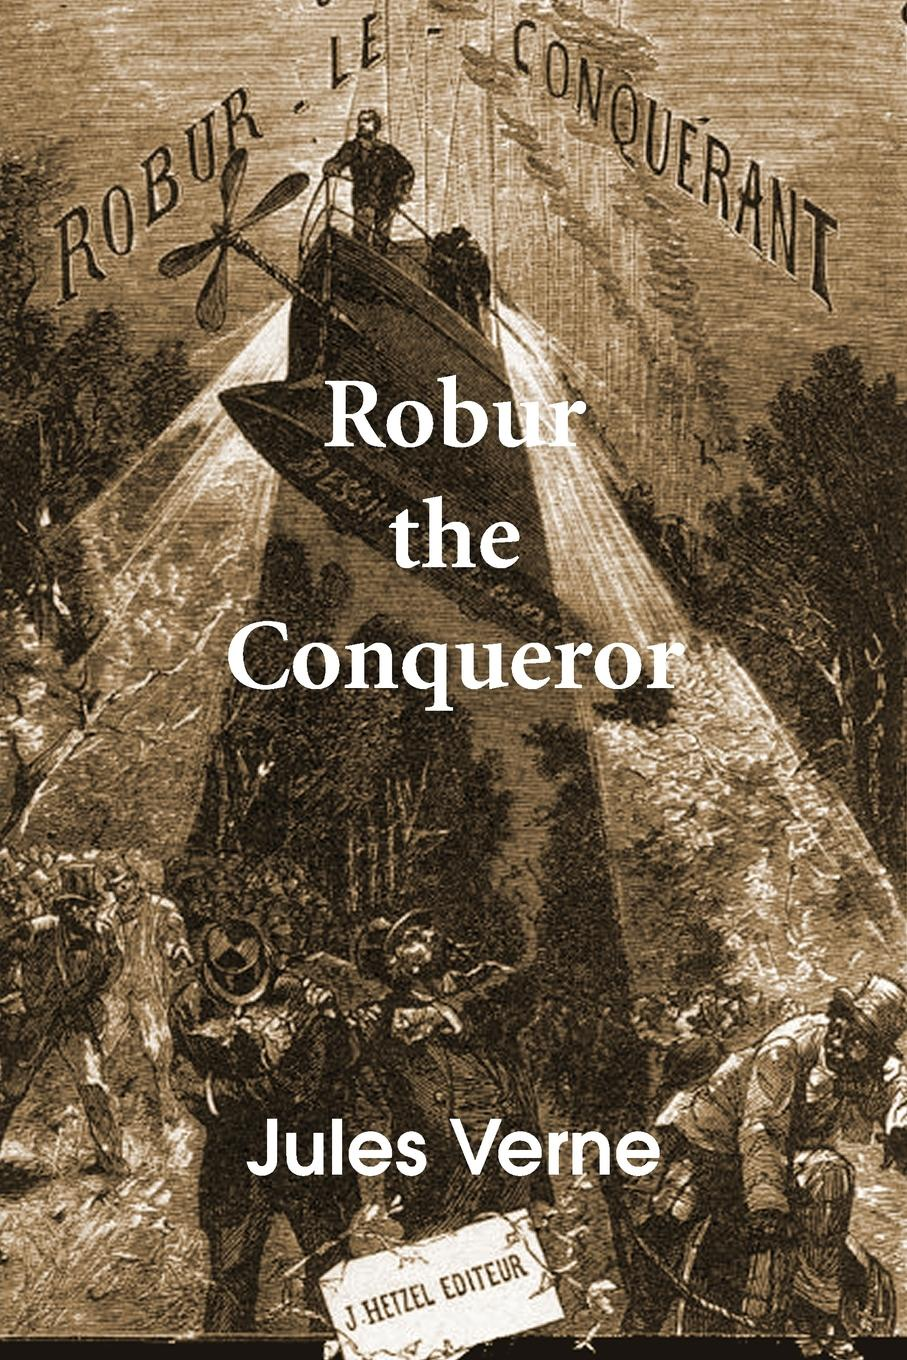 Jules Verne Robur the Conqueror more than a conqueror